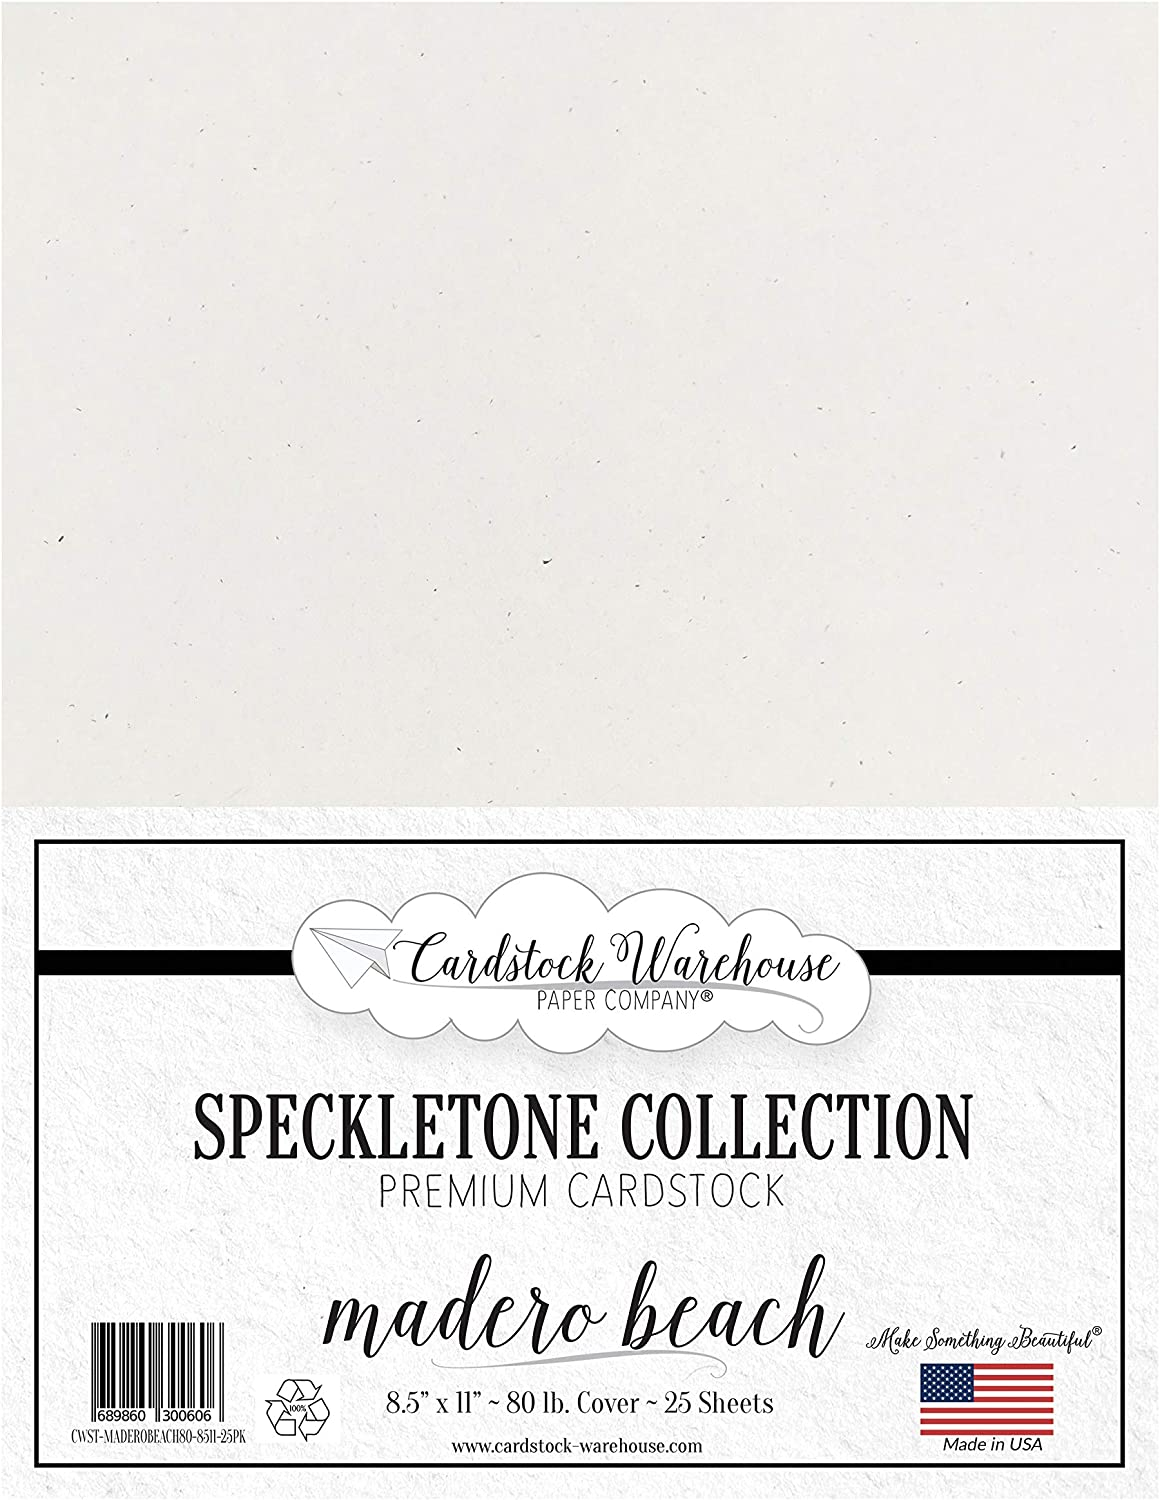 Madero Beach Speckletone 100% Recycled Cardstock Paper - 8.5 x 11 inch - PREMIUM 80 LB. COVER - 25 Sheets